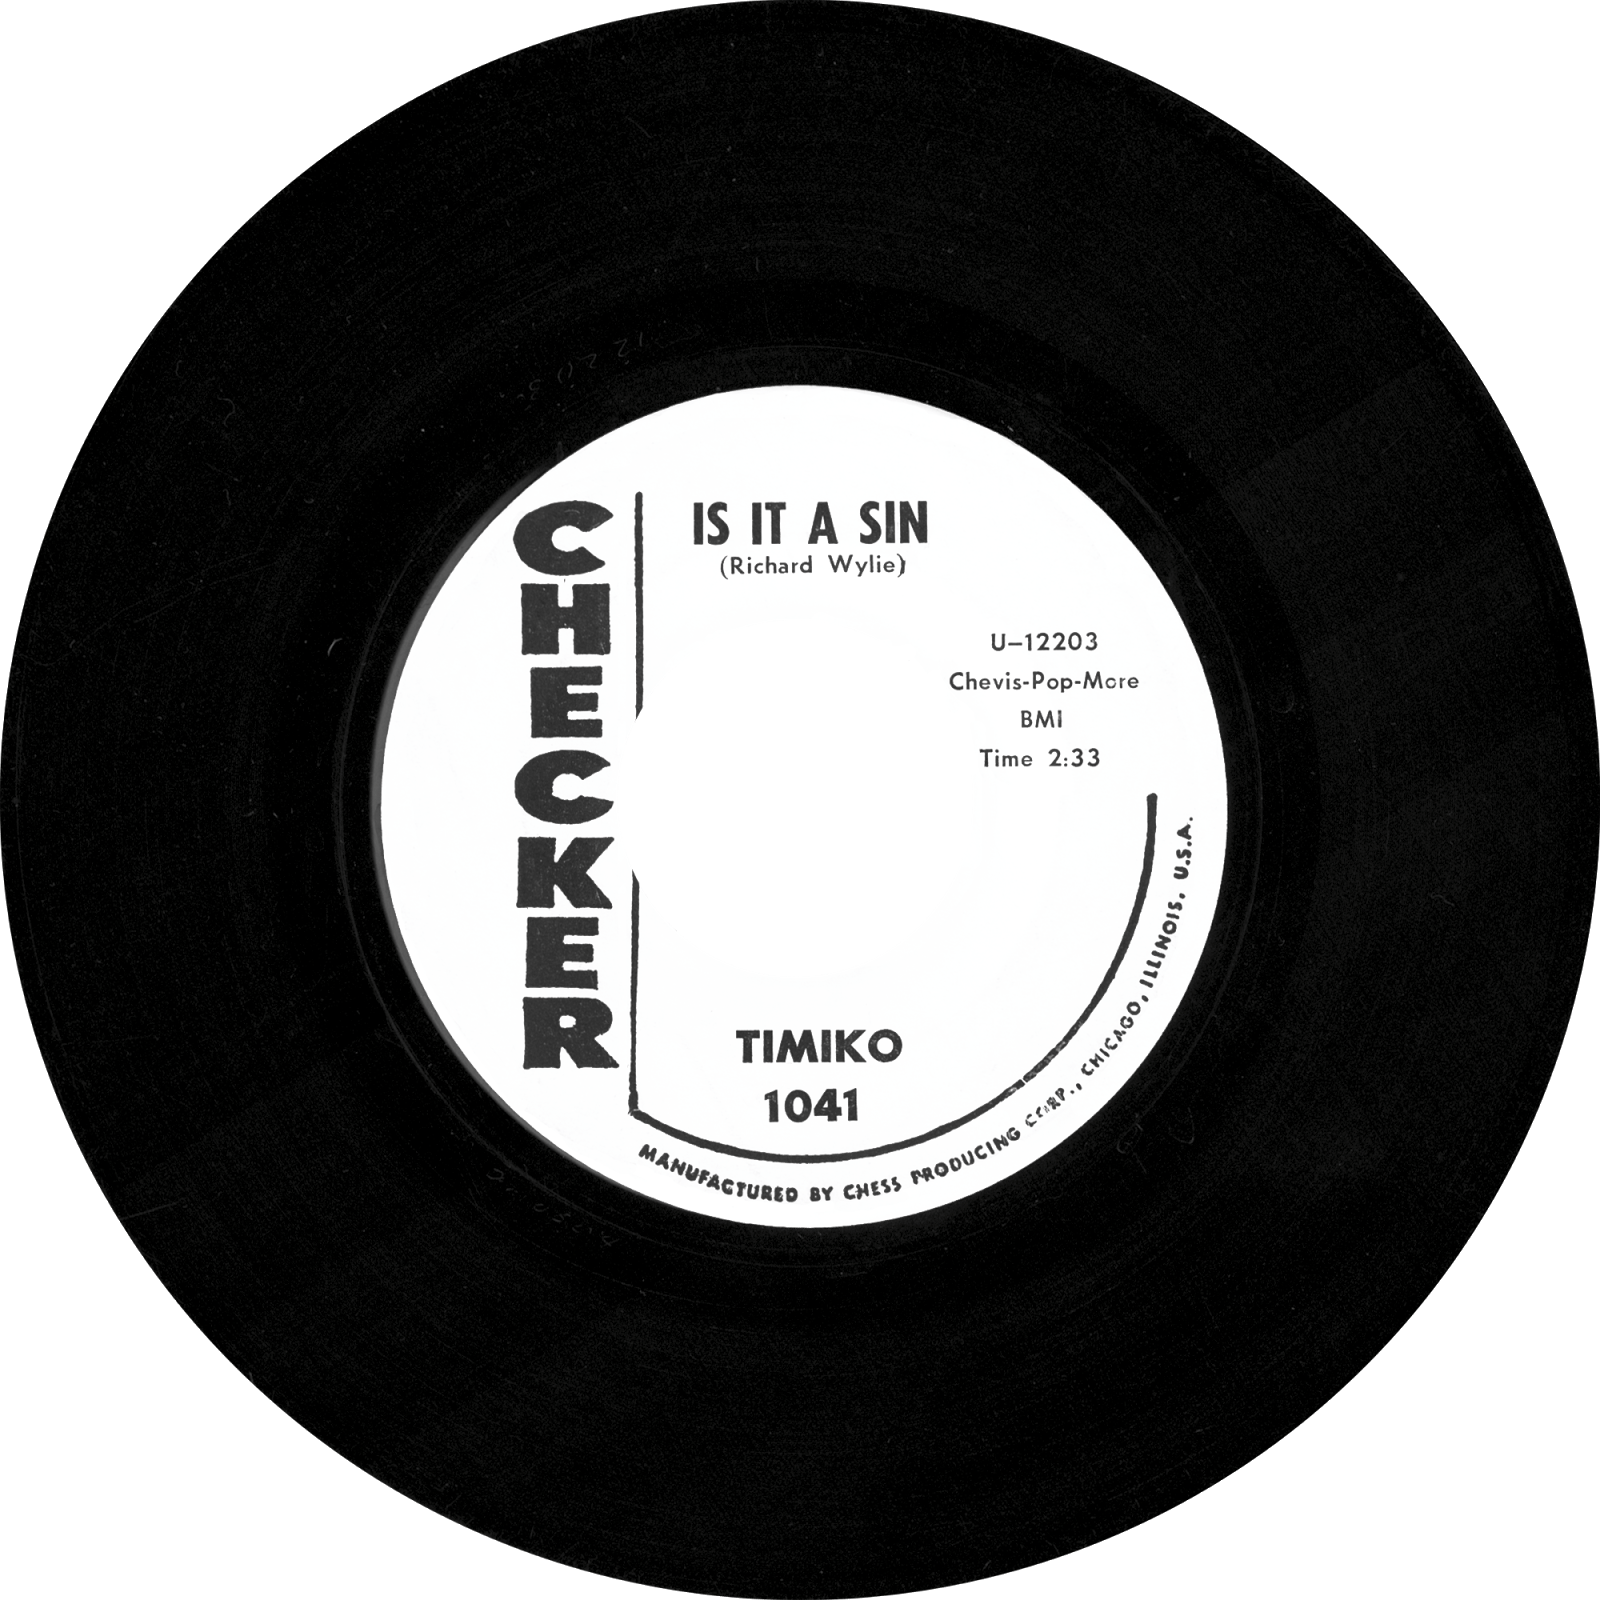 Transparent records oldies. Stereo candies timiko is